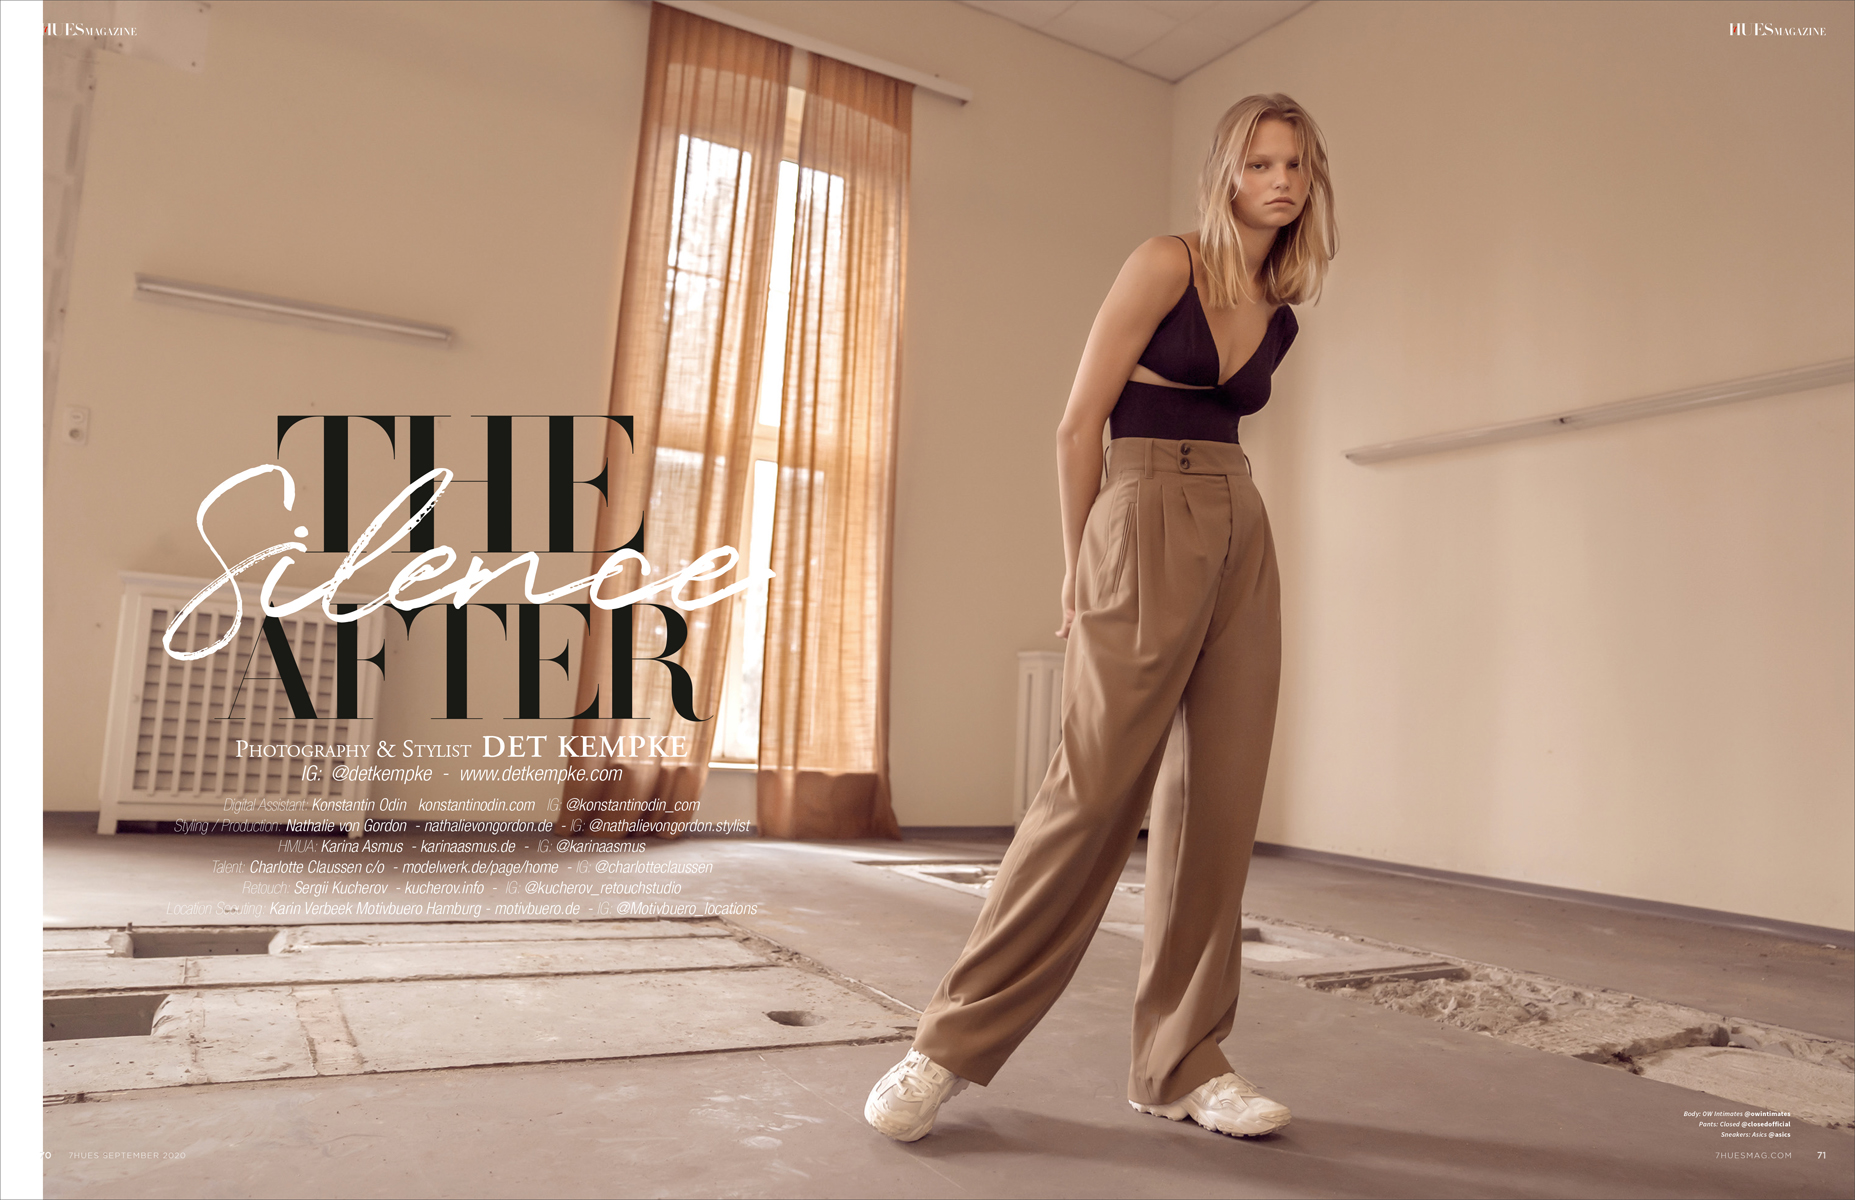 The Silence After 7Hues Magazine Mode ´54 September 20